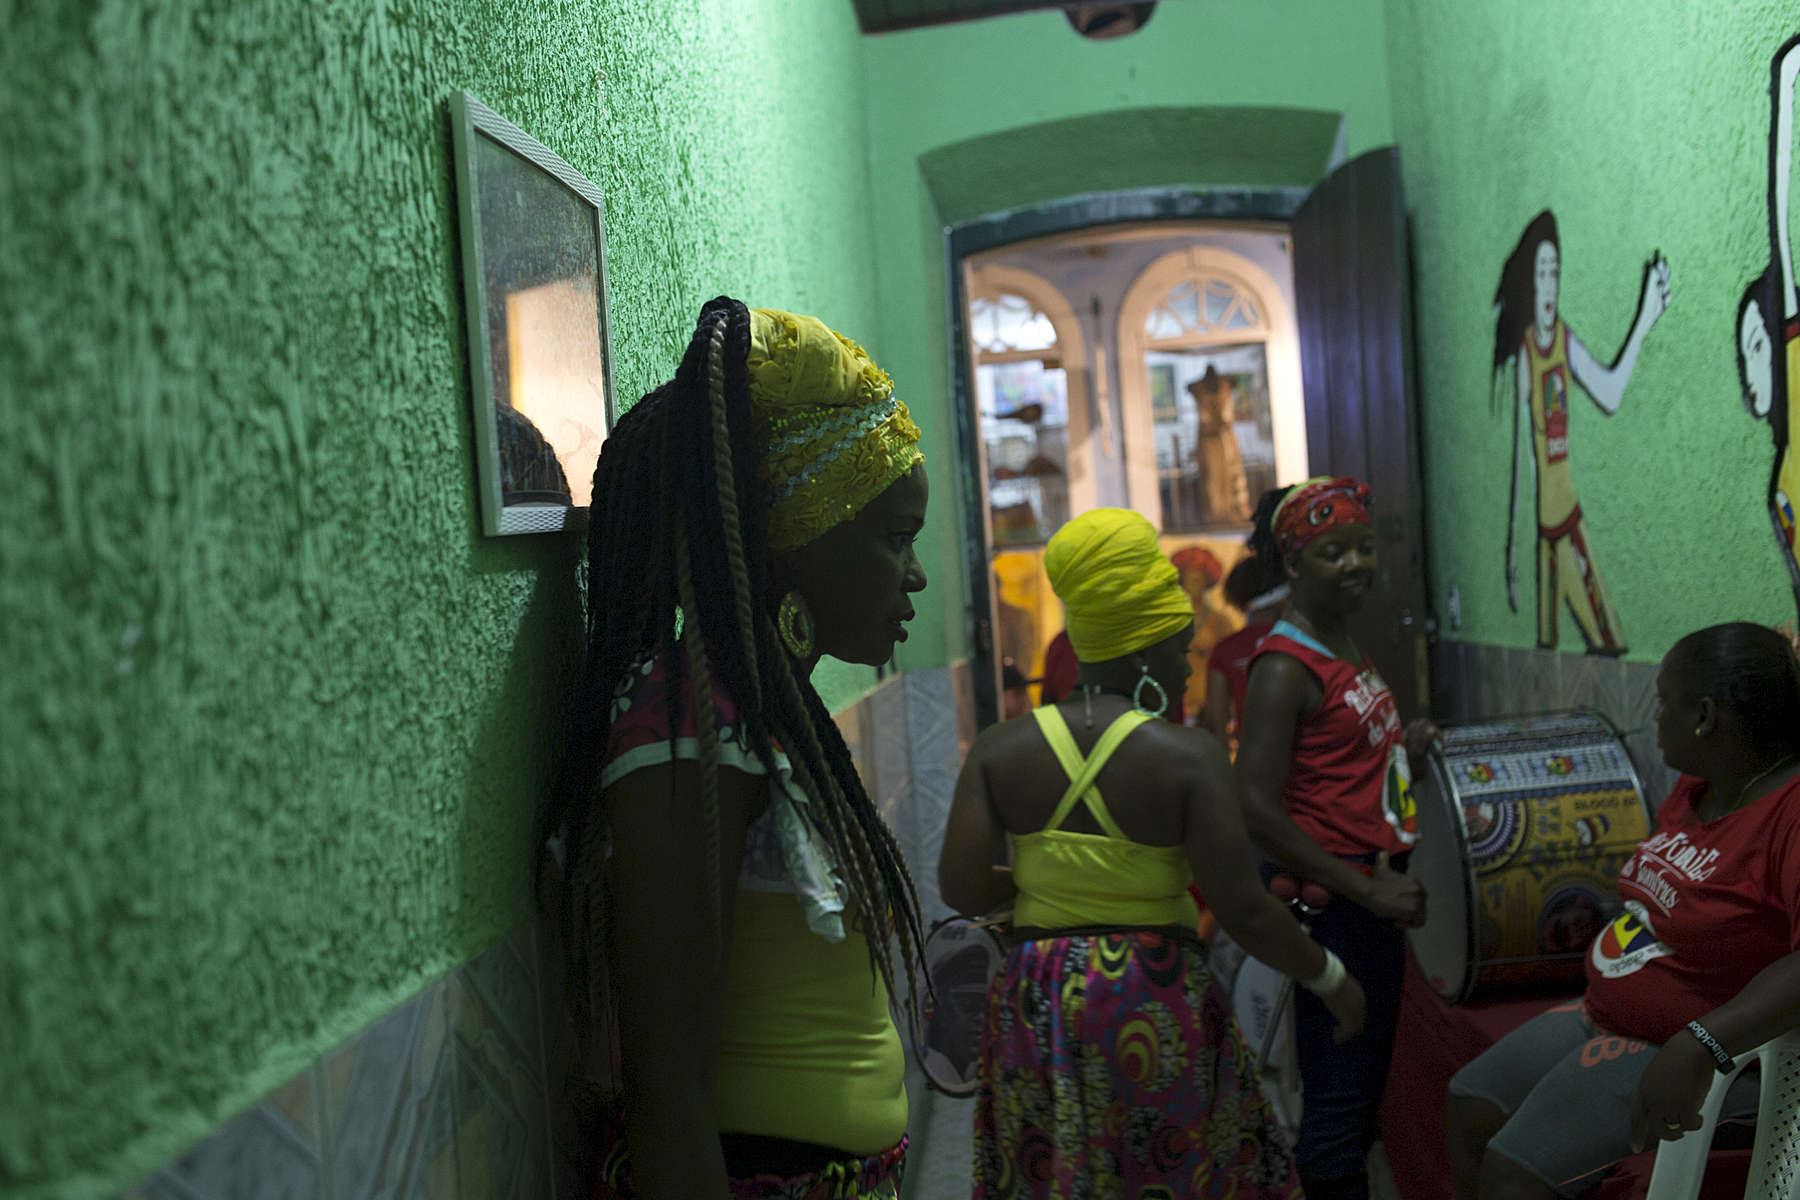 Adriana Portela (left) waits in the front hallway of Project Didá in Salvador's historic neighborhood, Pelourinho before a performance.